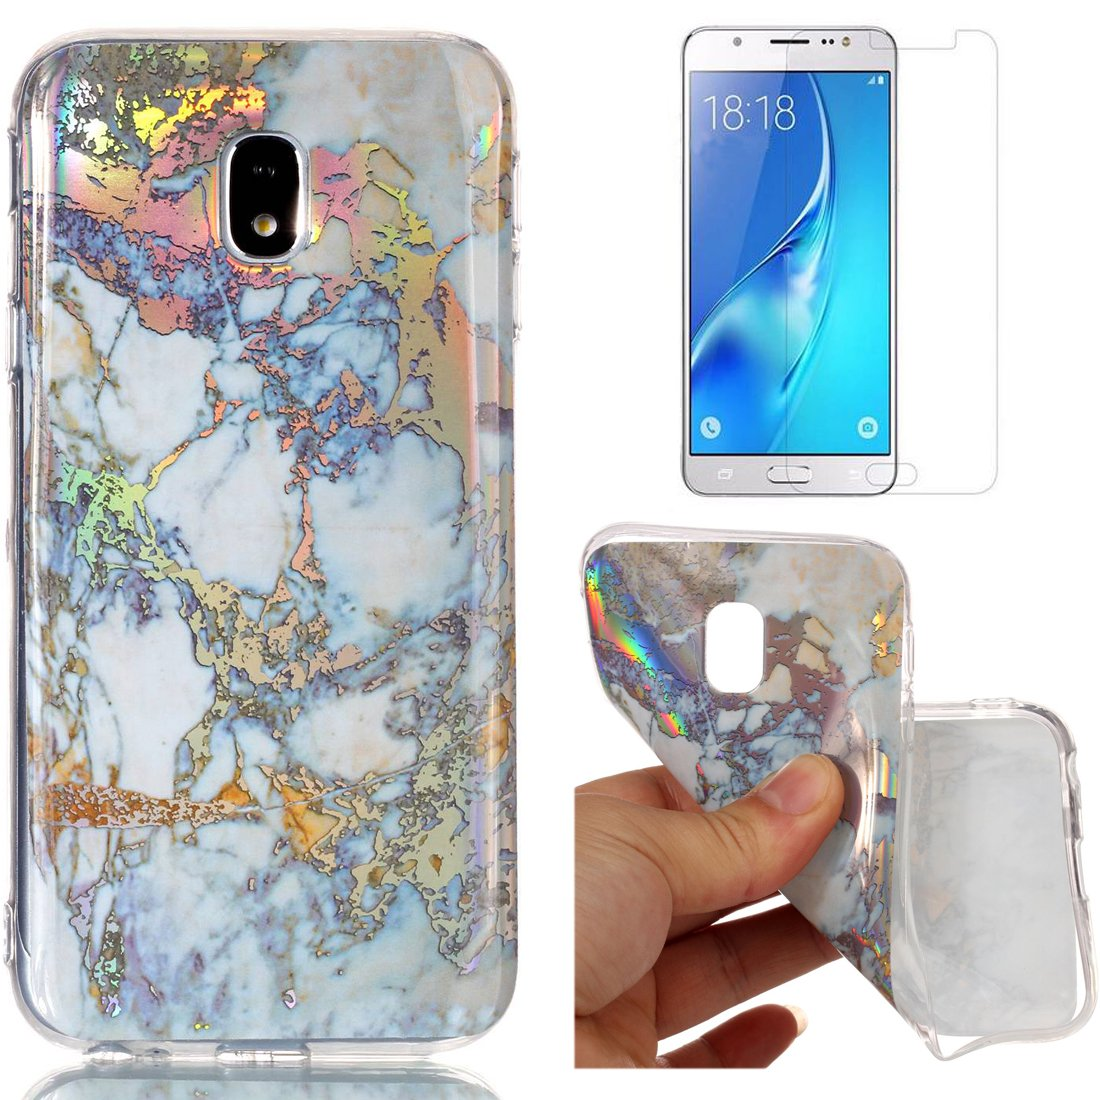 For Samsung Galaxy J3 2017 J330 Marble Case Blue and Gray,OYIME Unique Luxury Glitter Colorful Plating Pattern Skin Design Clear Silicone Rubber Slim Fit Ultra Thin Protective Back Cover Glossy Soft Gel TPU Shell Shockproof Drop Protection Protective Trans